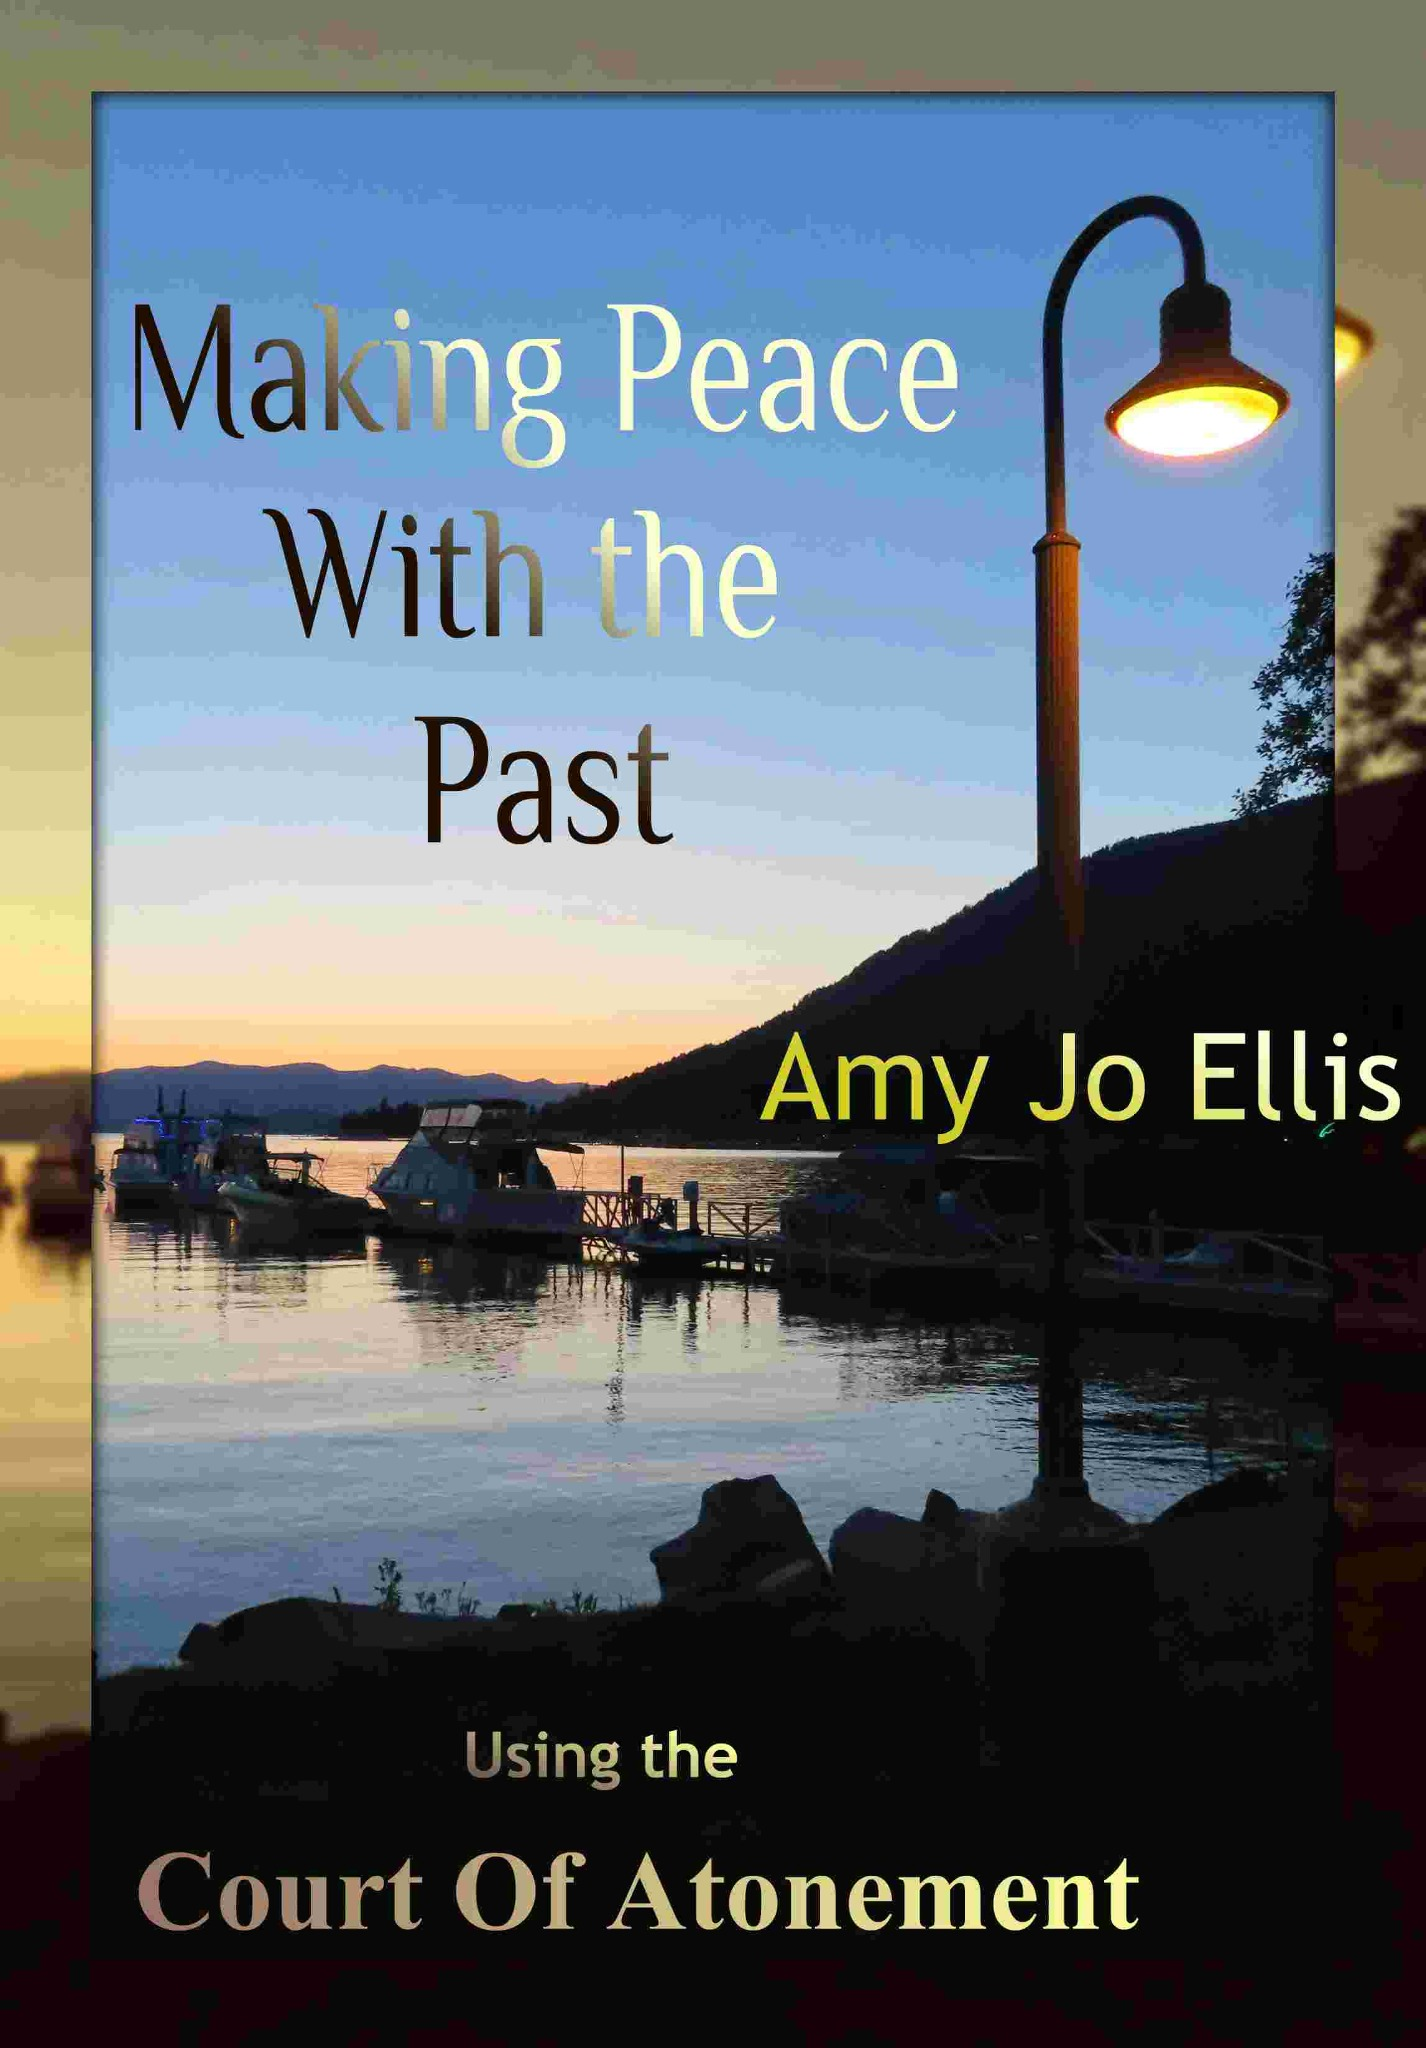 Making Peace with the Past using the Court of Atonement